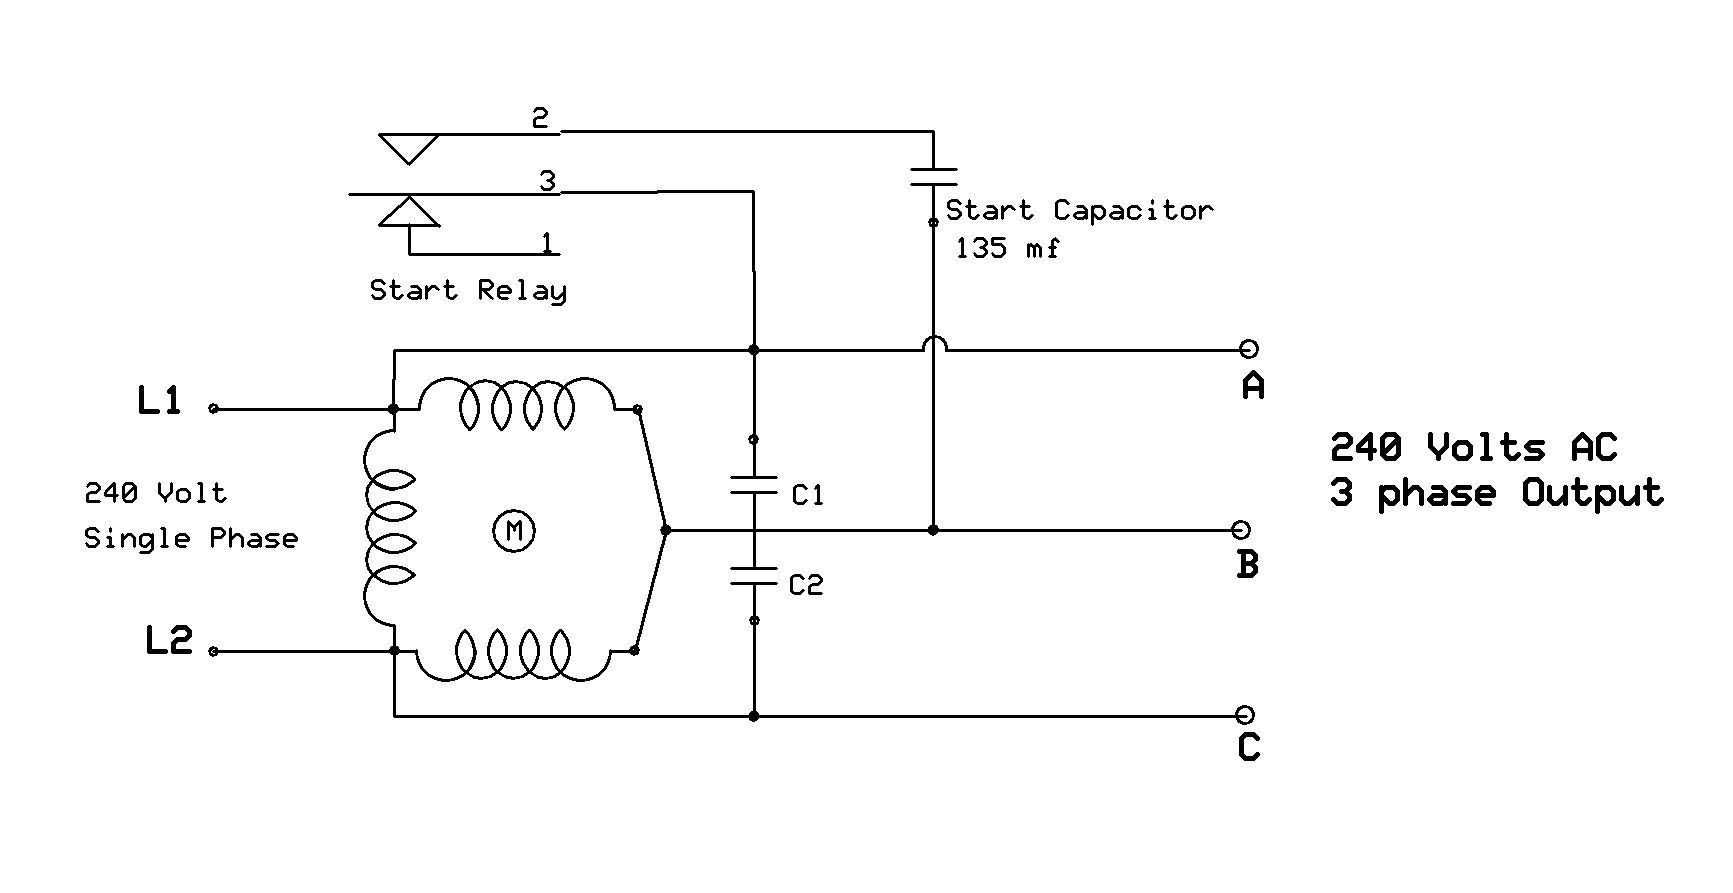 208V Three Phase Wiring Diagram from i.pinimg.com